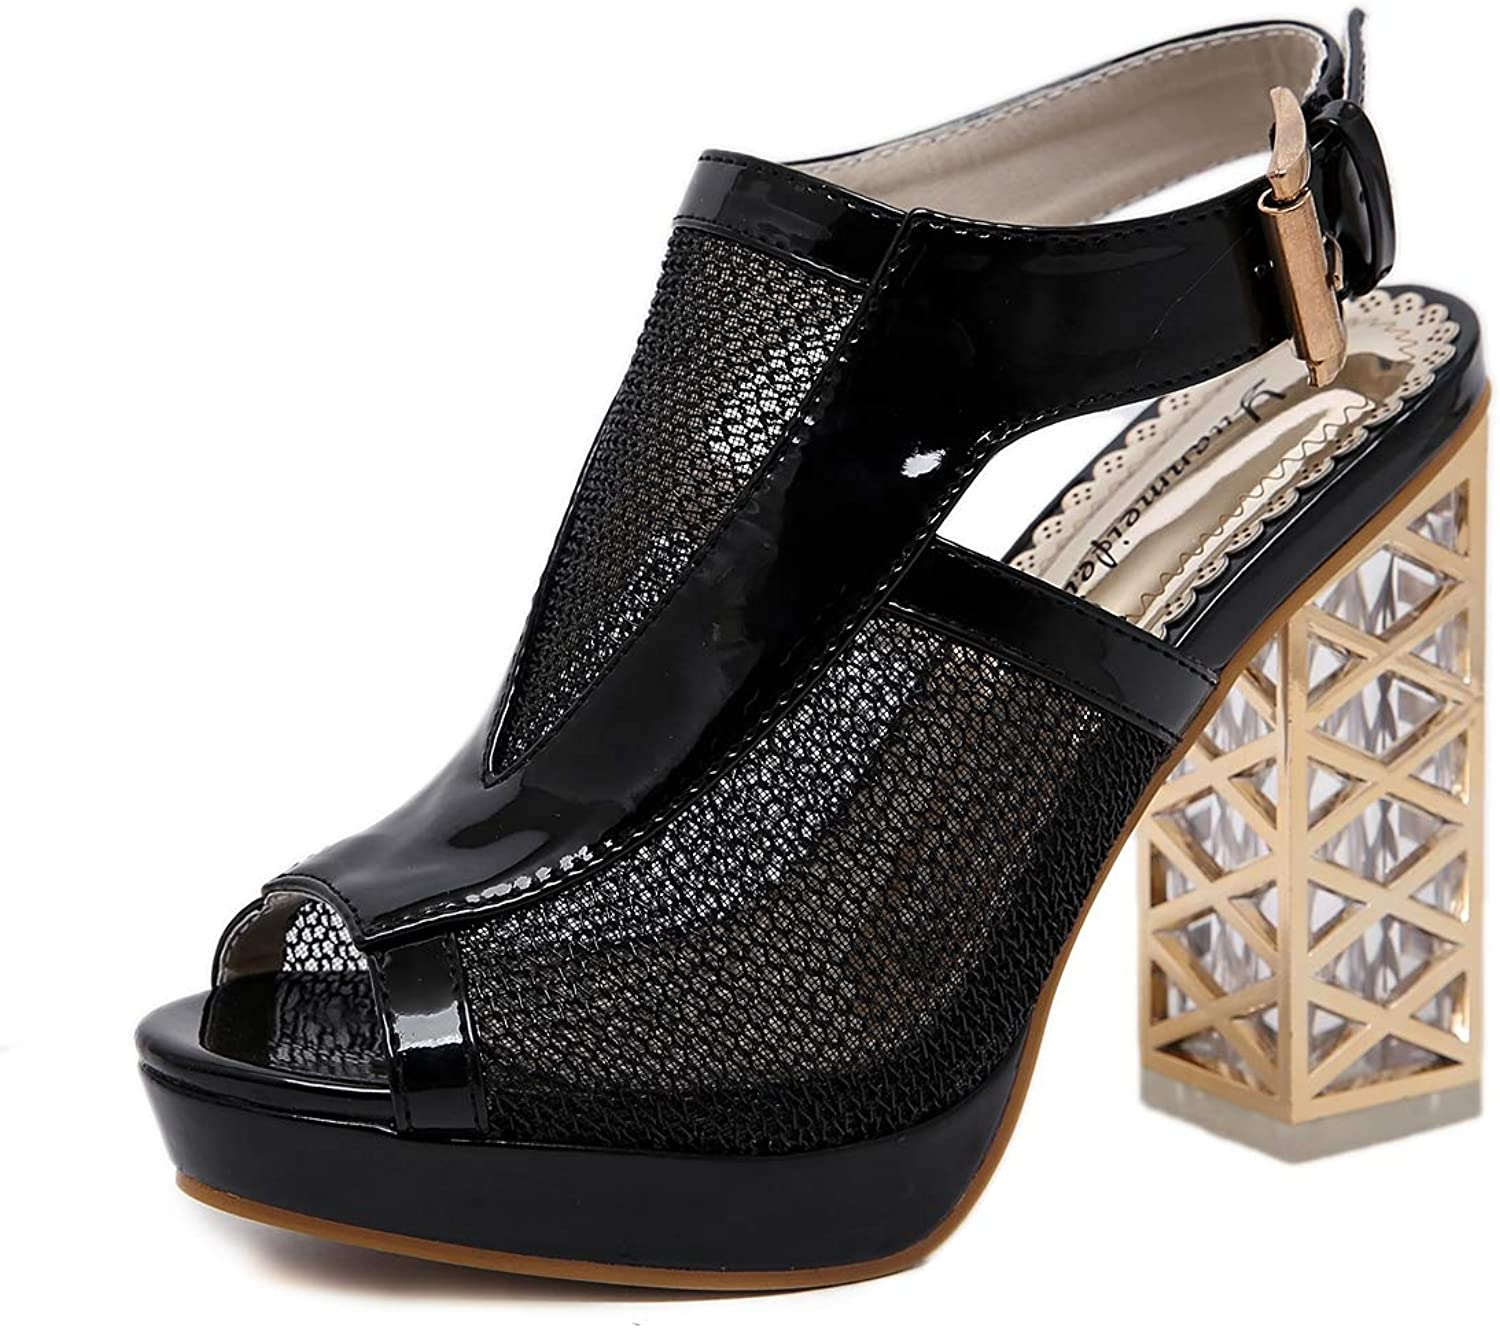 Women's Sandals - Crystal Thick with High Heel Cutout Platform Sexy Fish Mouth shoes